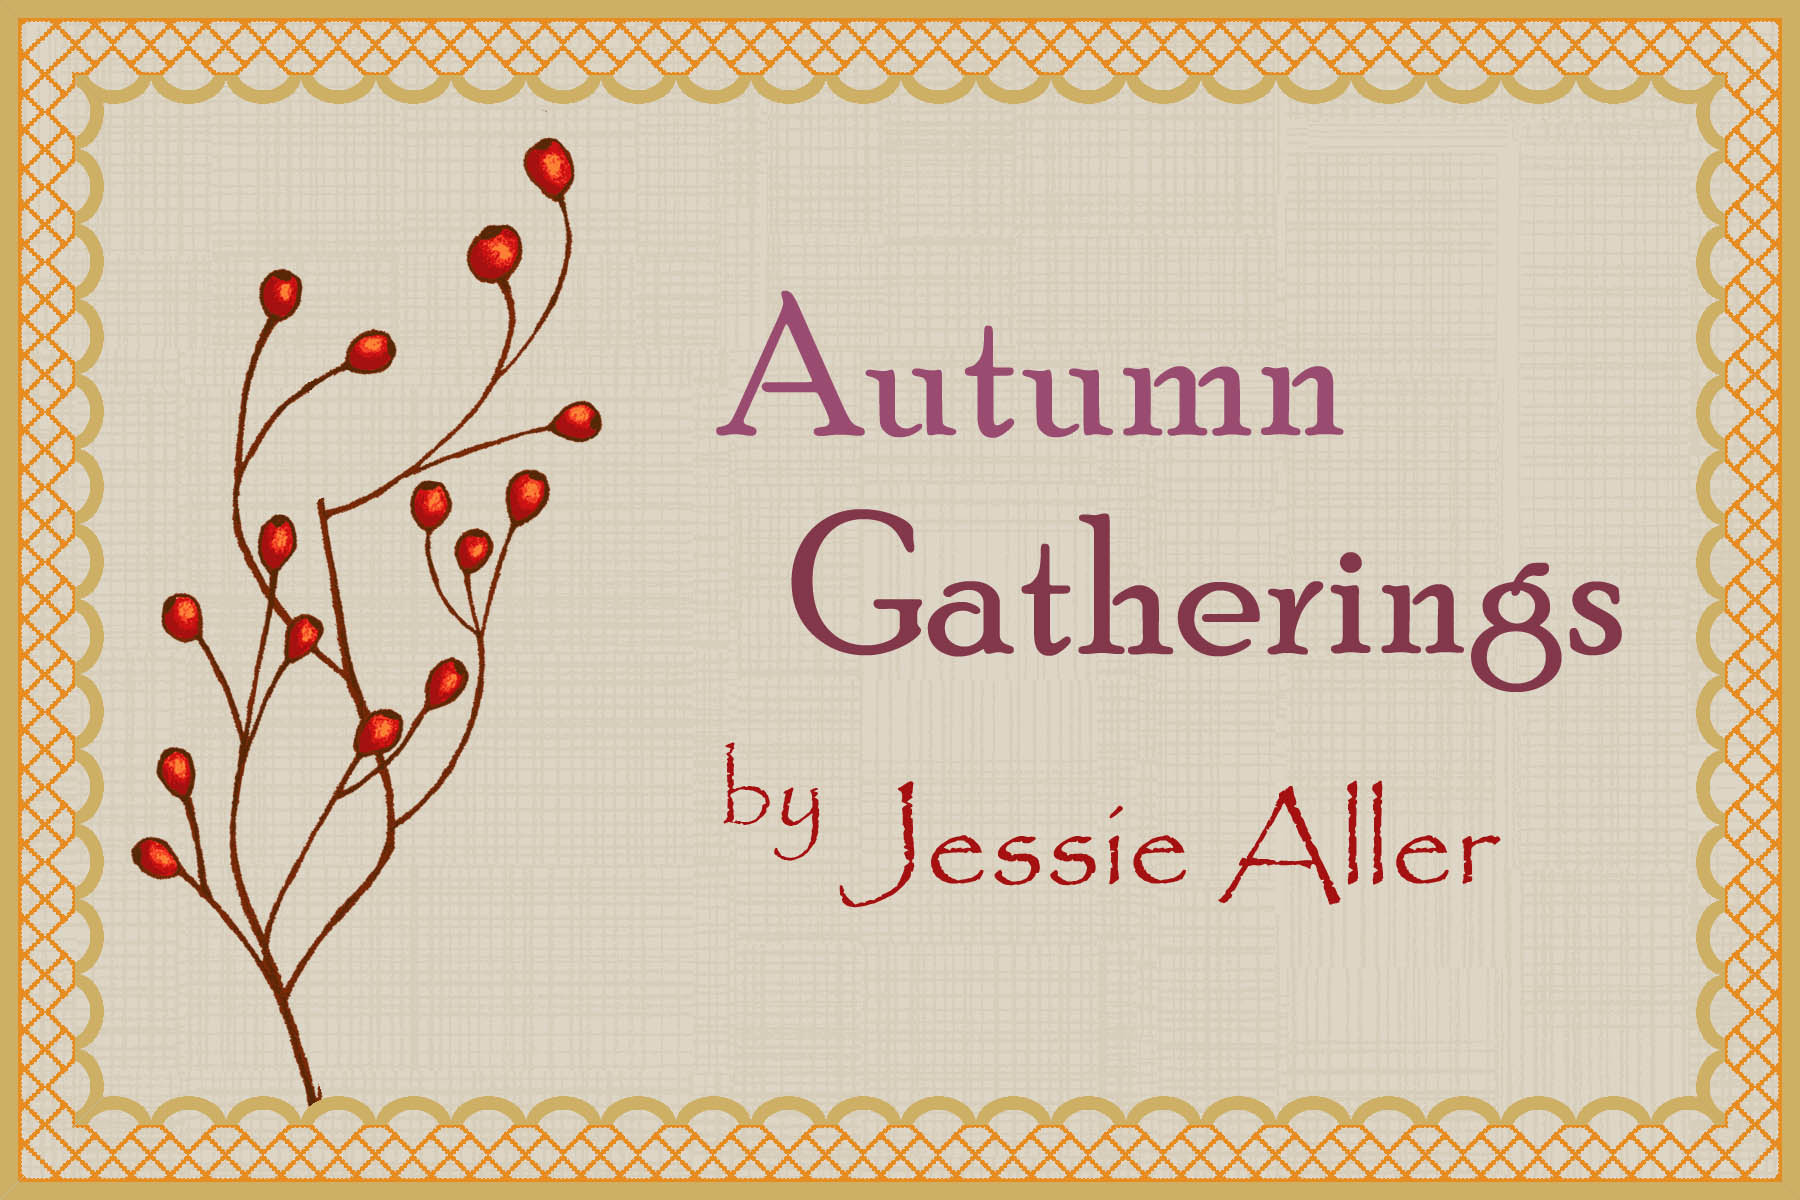 Autumn Gatherings